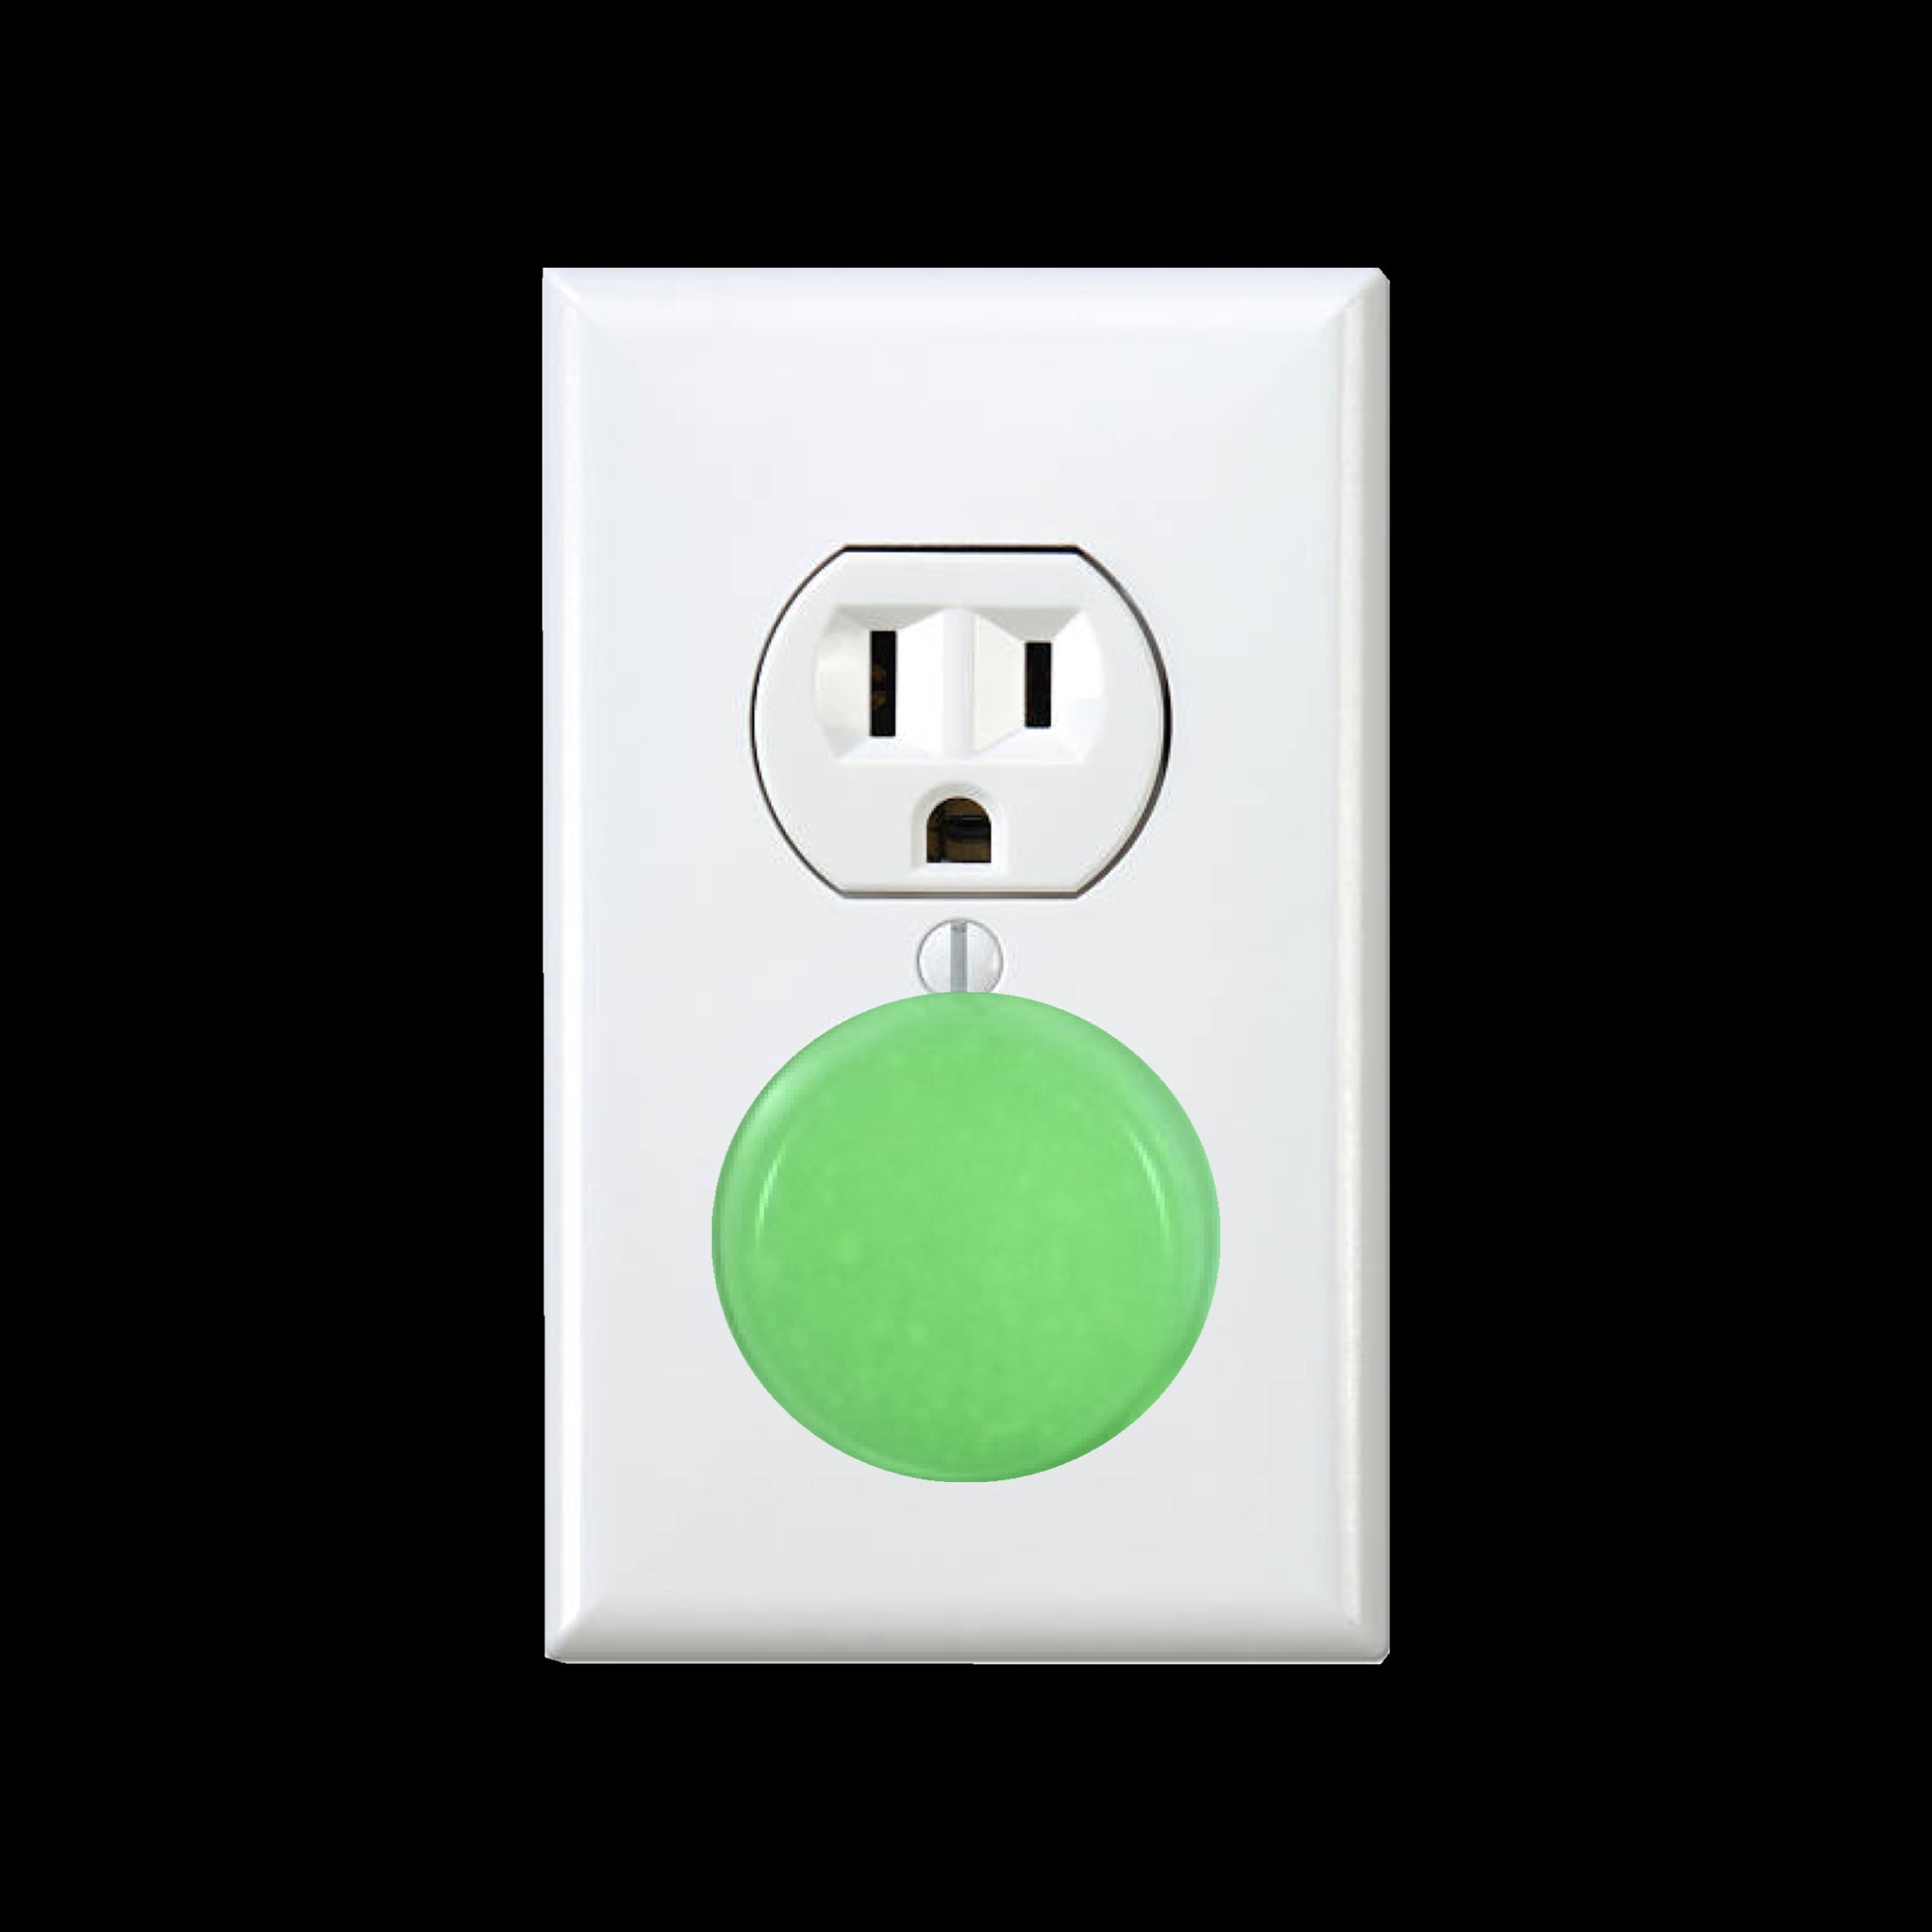 Glow in the dark safety outlet plastic cap